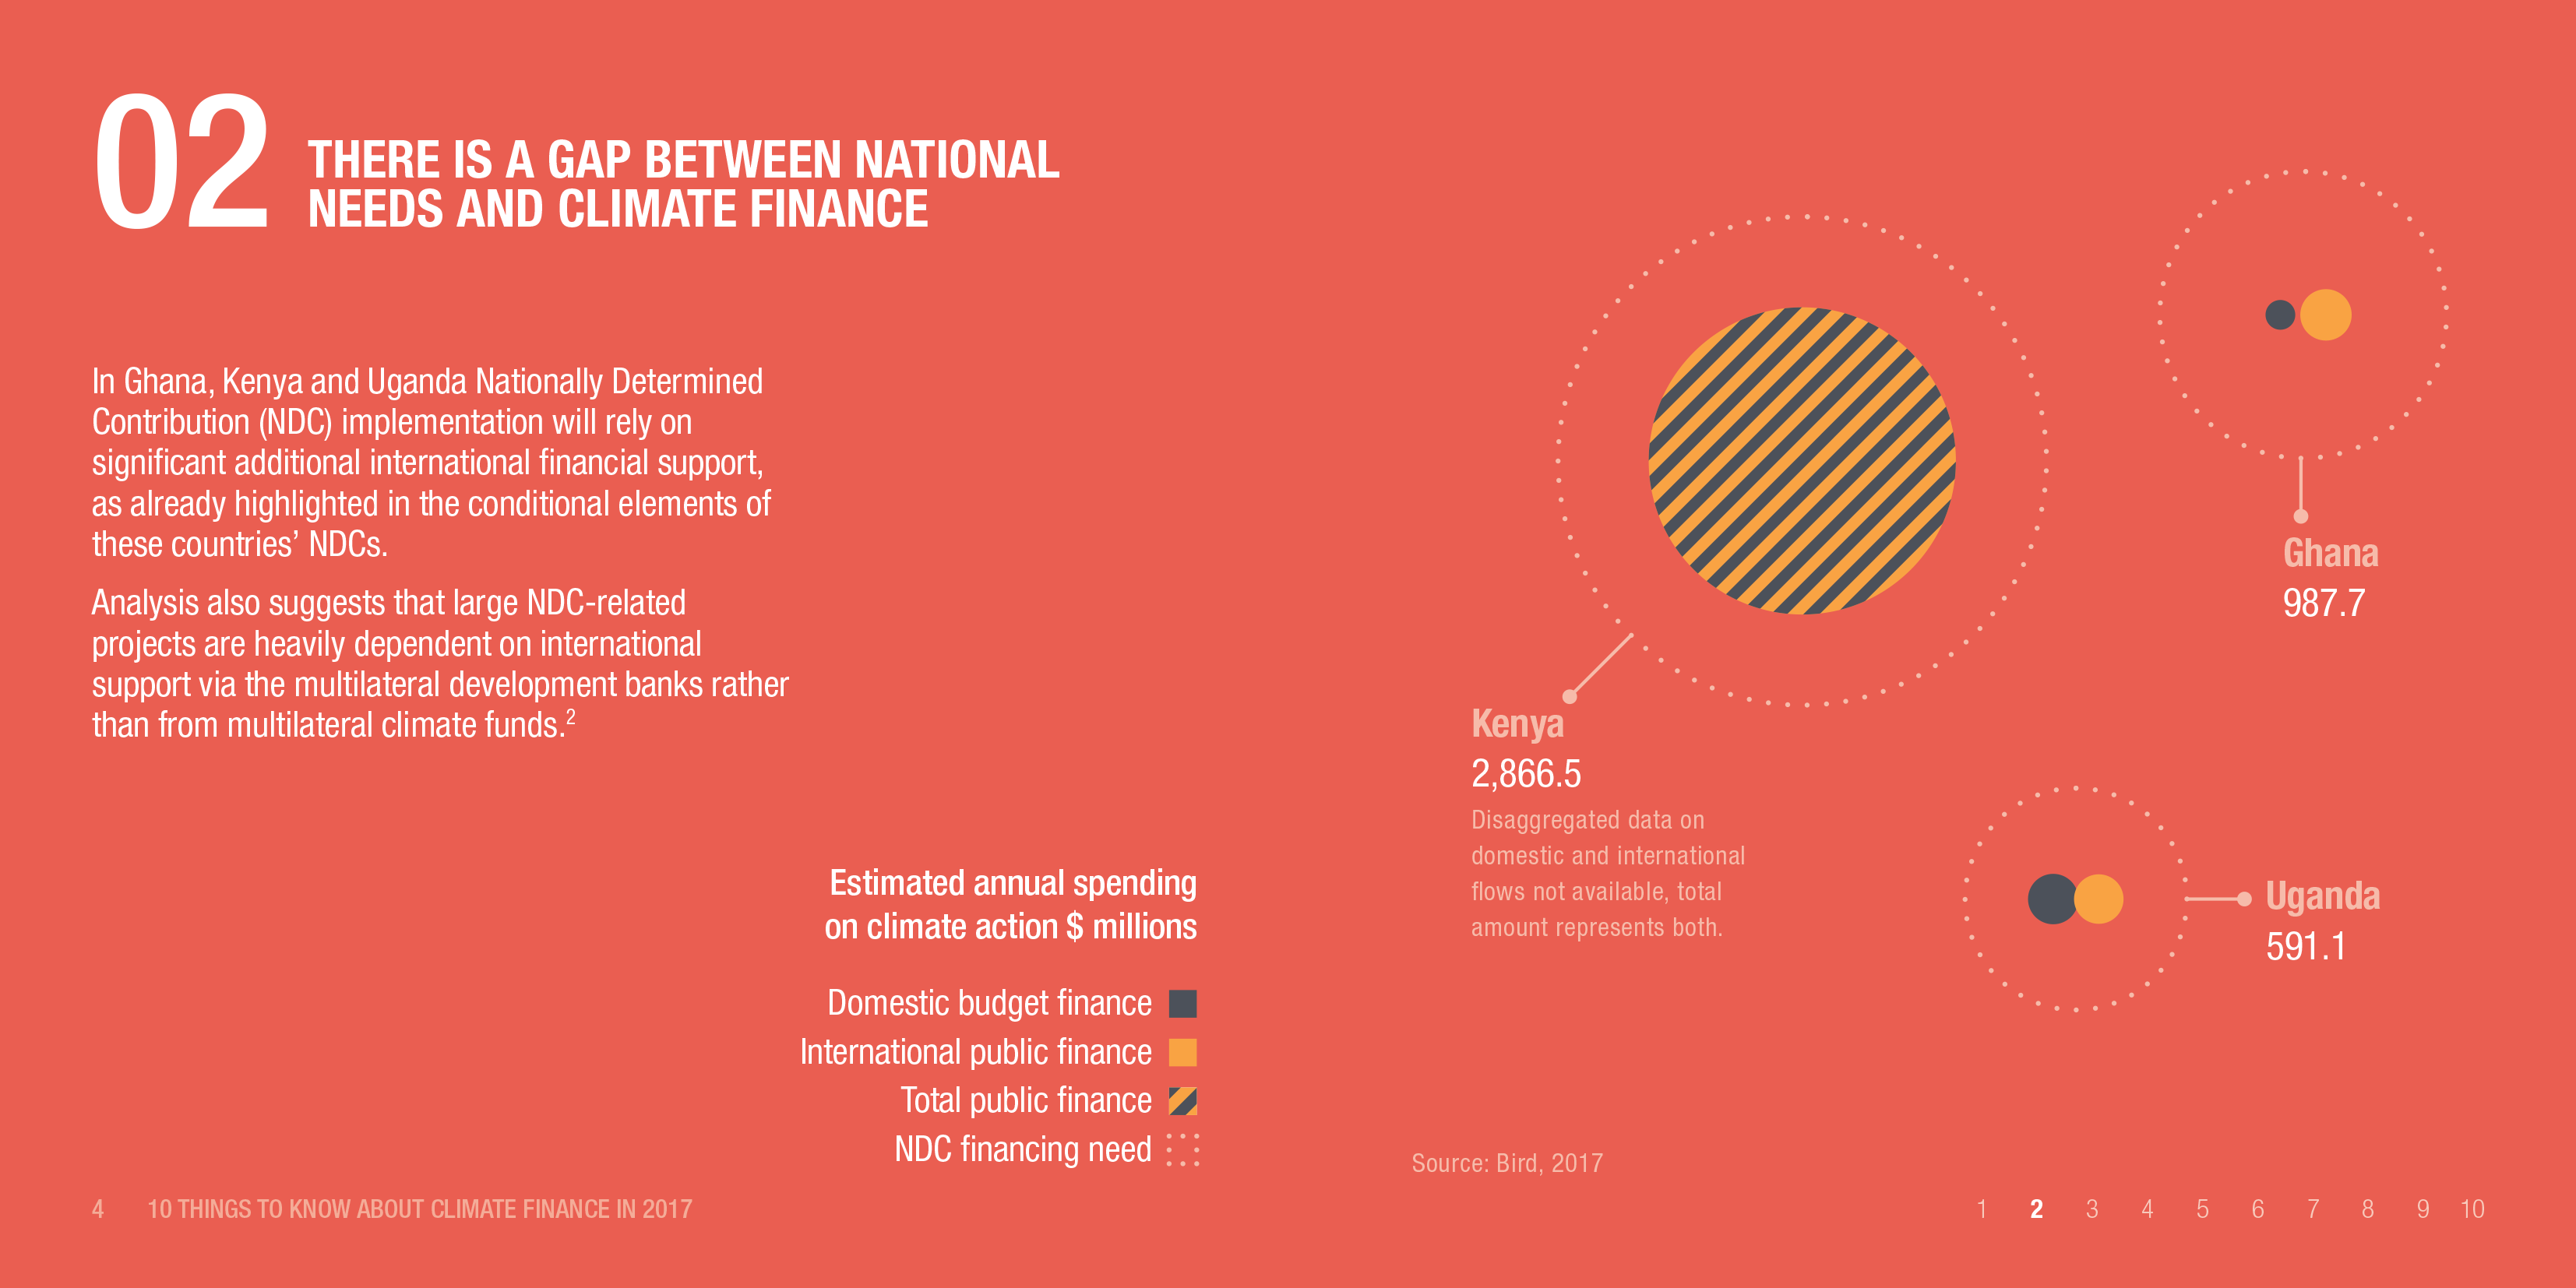 Infographic: There is a gap between national needs and climate finance